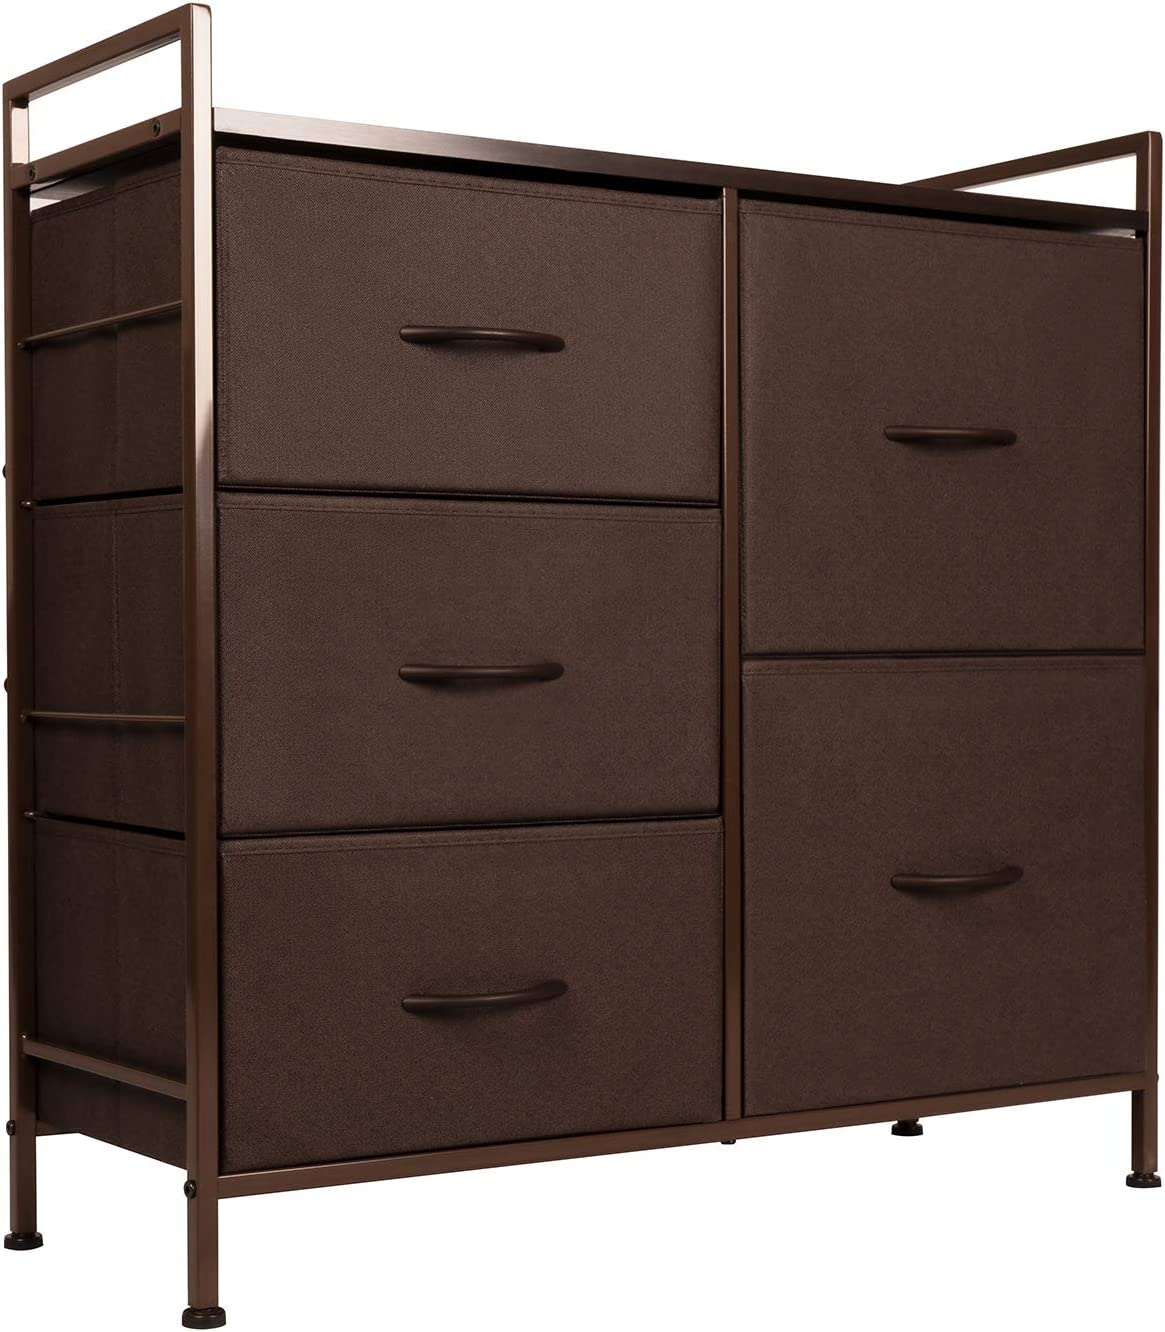 ODK Dresser with 5 Drawers, Fabric Storage Tower, Organizer Unit for Bedroom, Chest for Hallway, Closet. Steel Frame and Wood Top, Brown